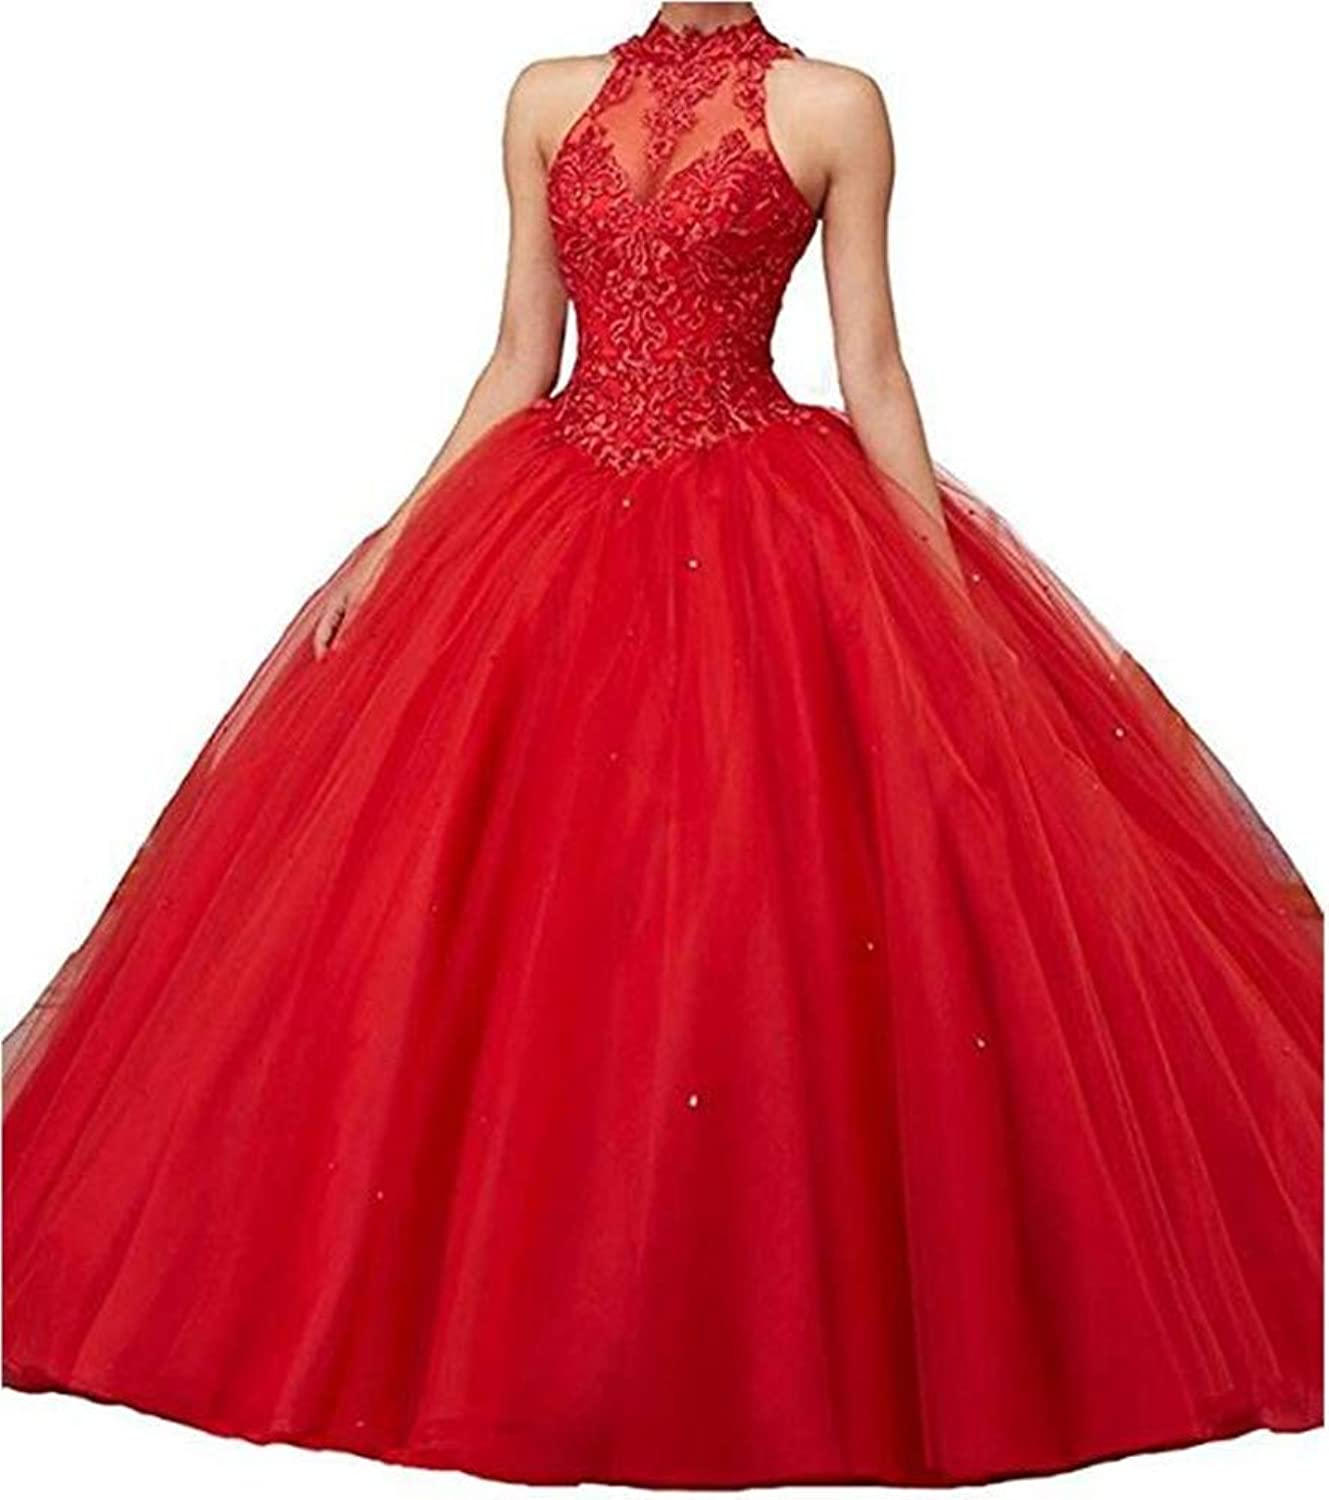 Ai Maria Women's Sweetheart Quinceanera Tulle Dress with Beads Crystal